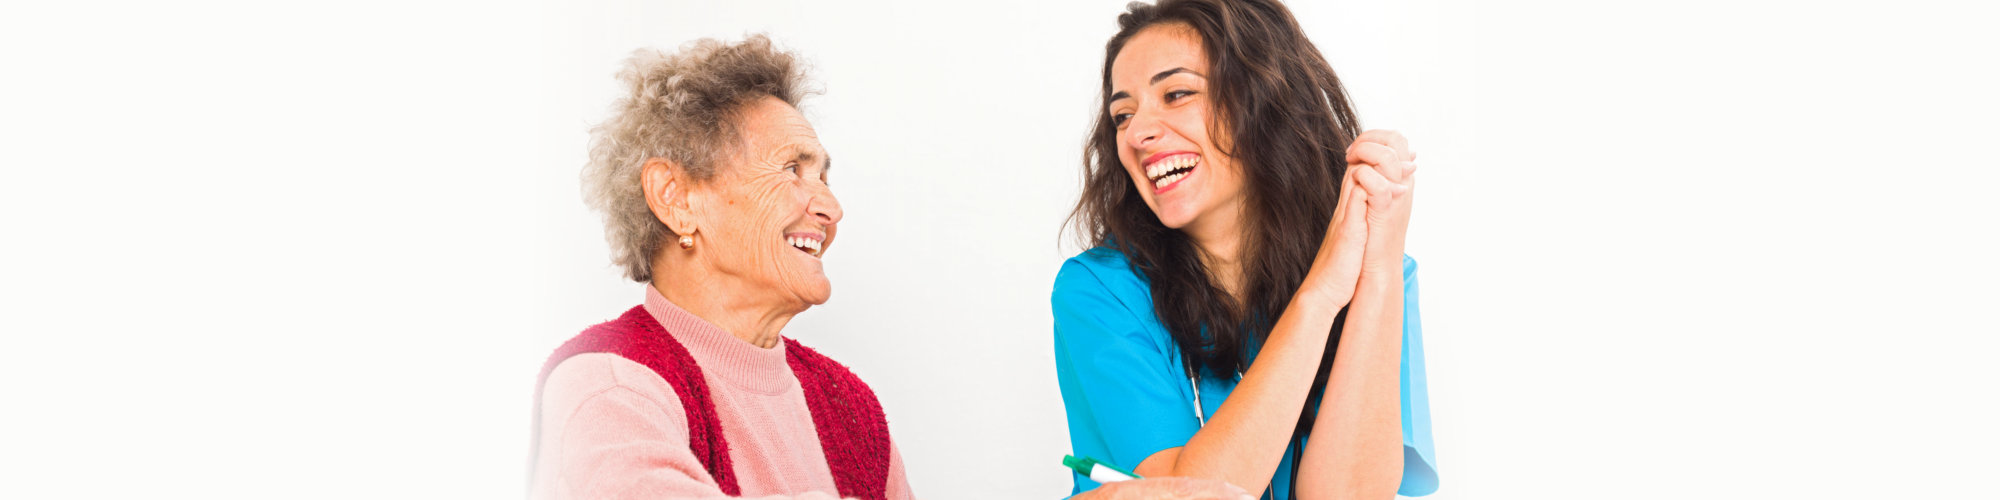 caregiver and elderly laughing